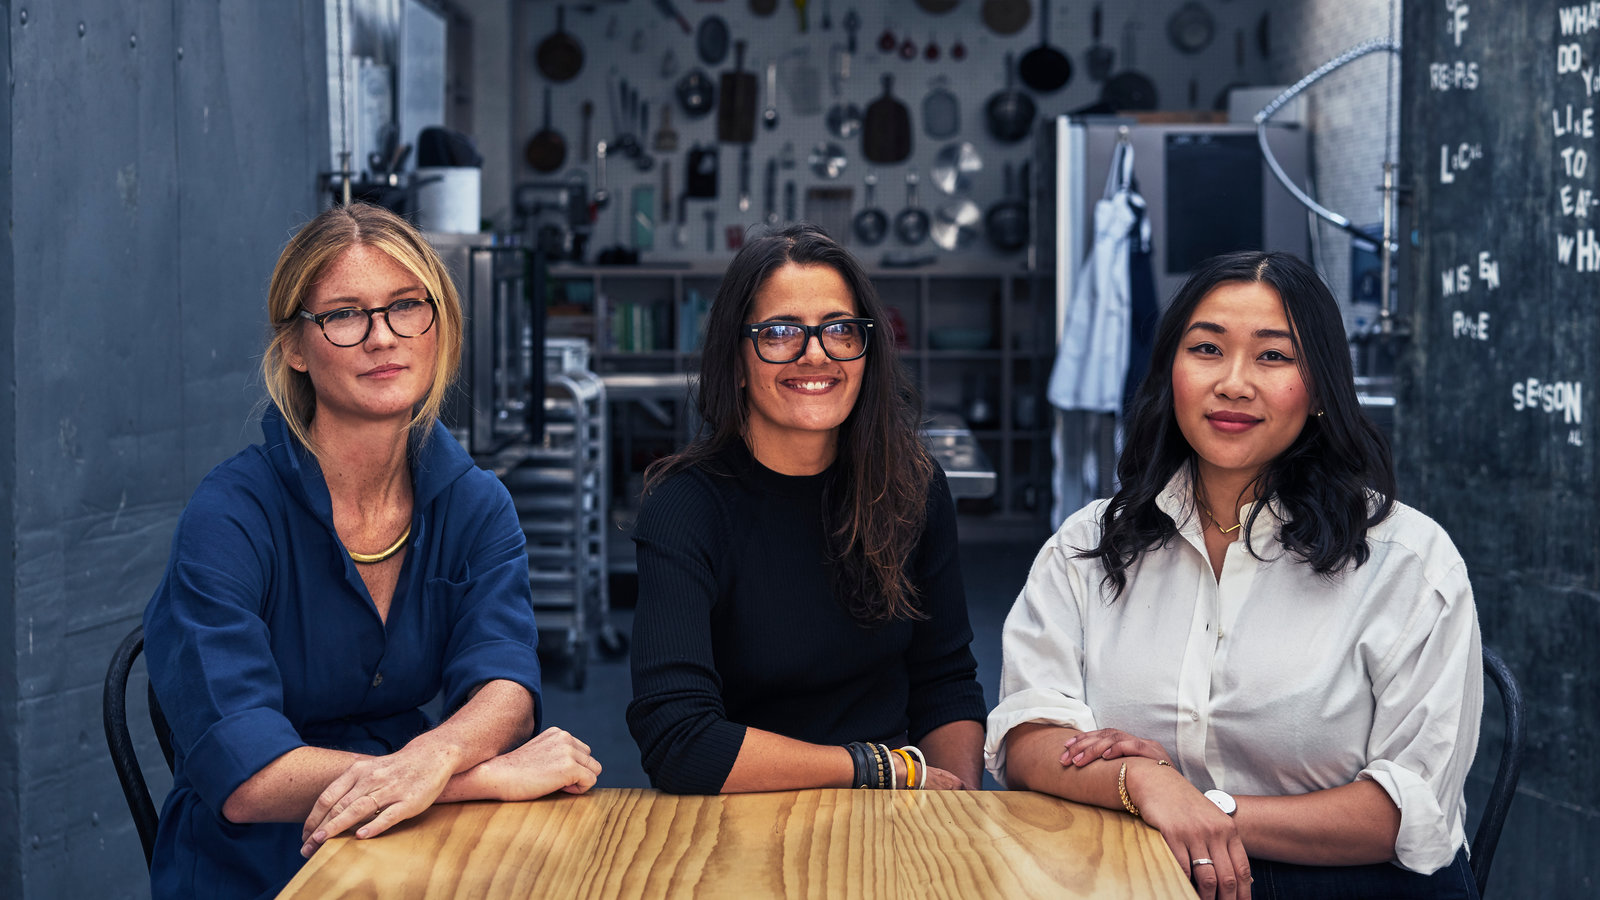 New Cooking School Offers Space for Dinner Parties Too